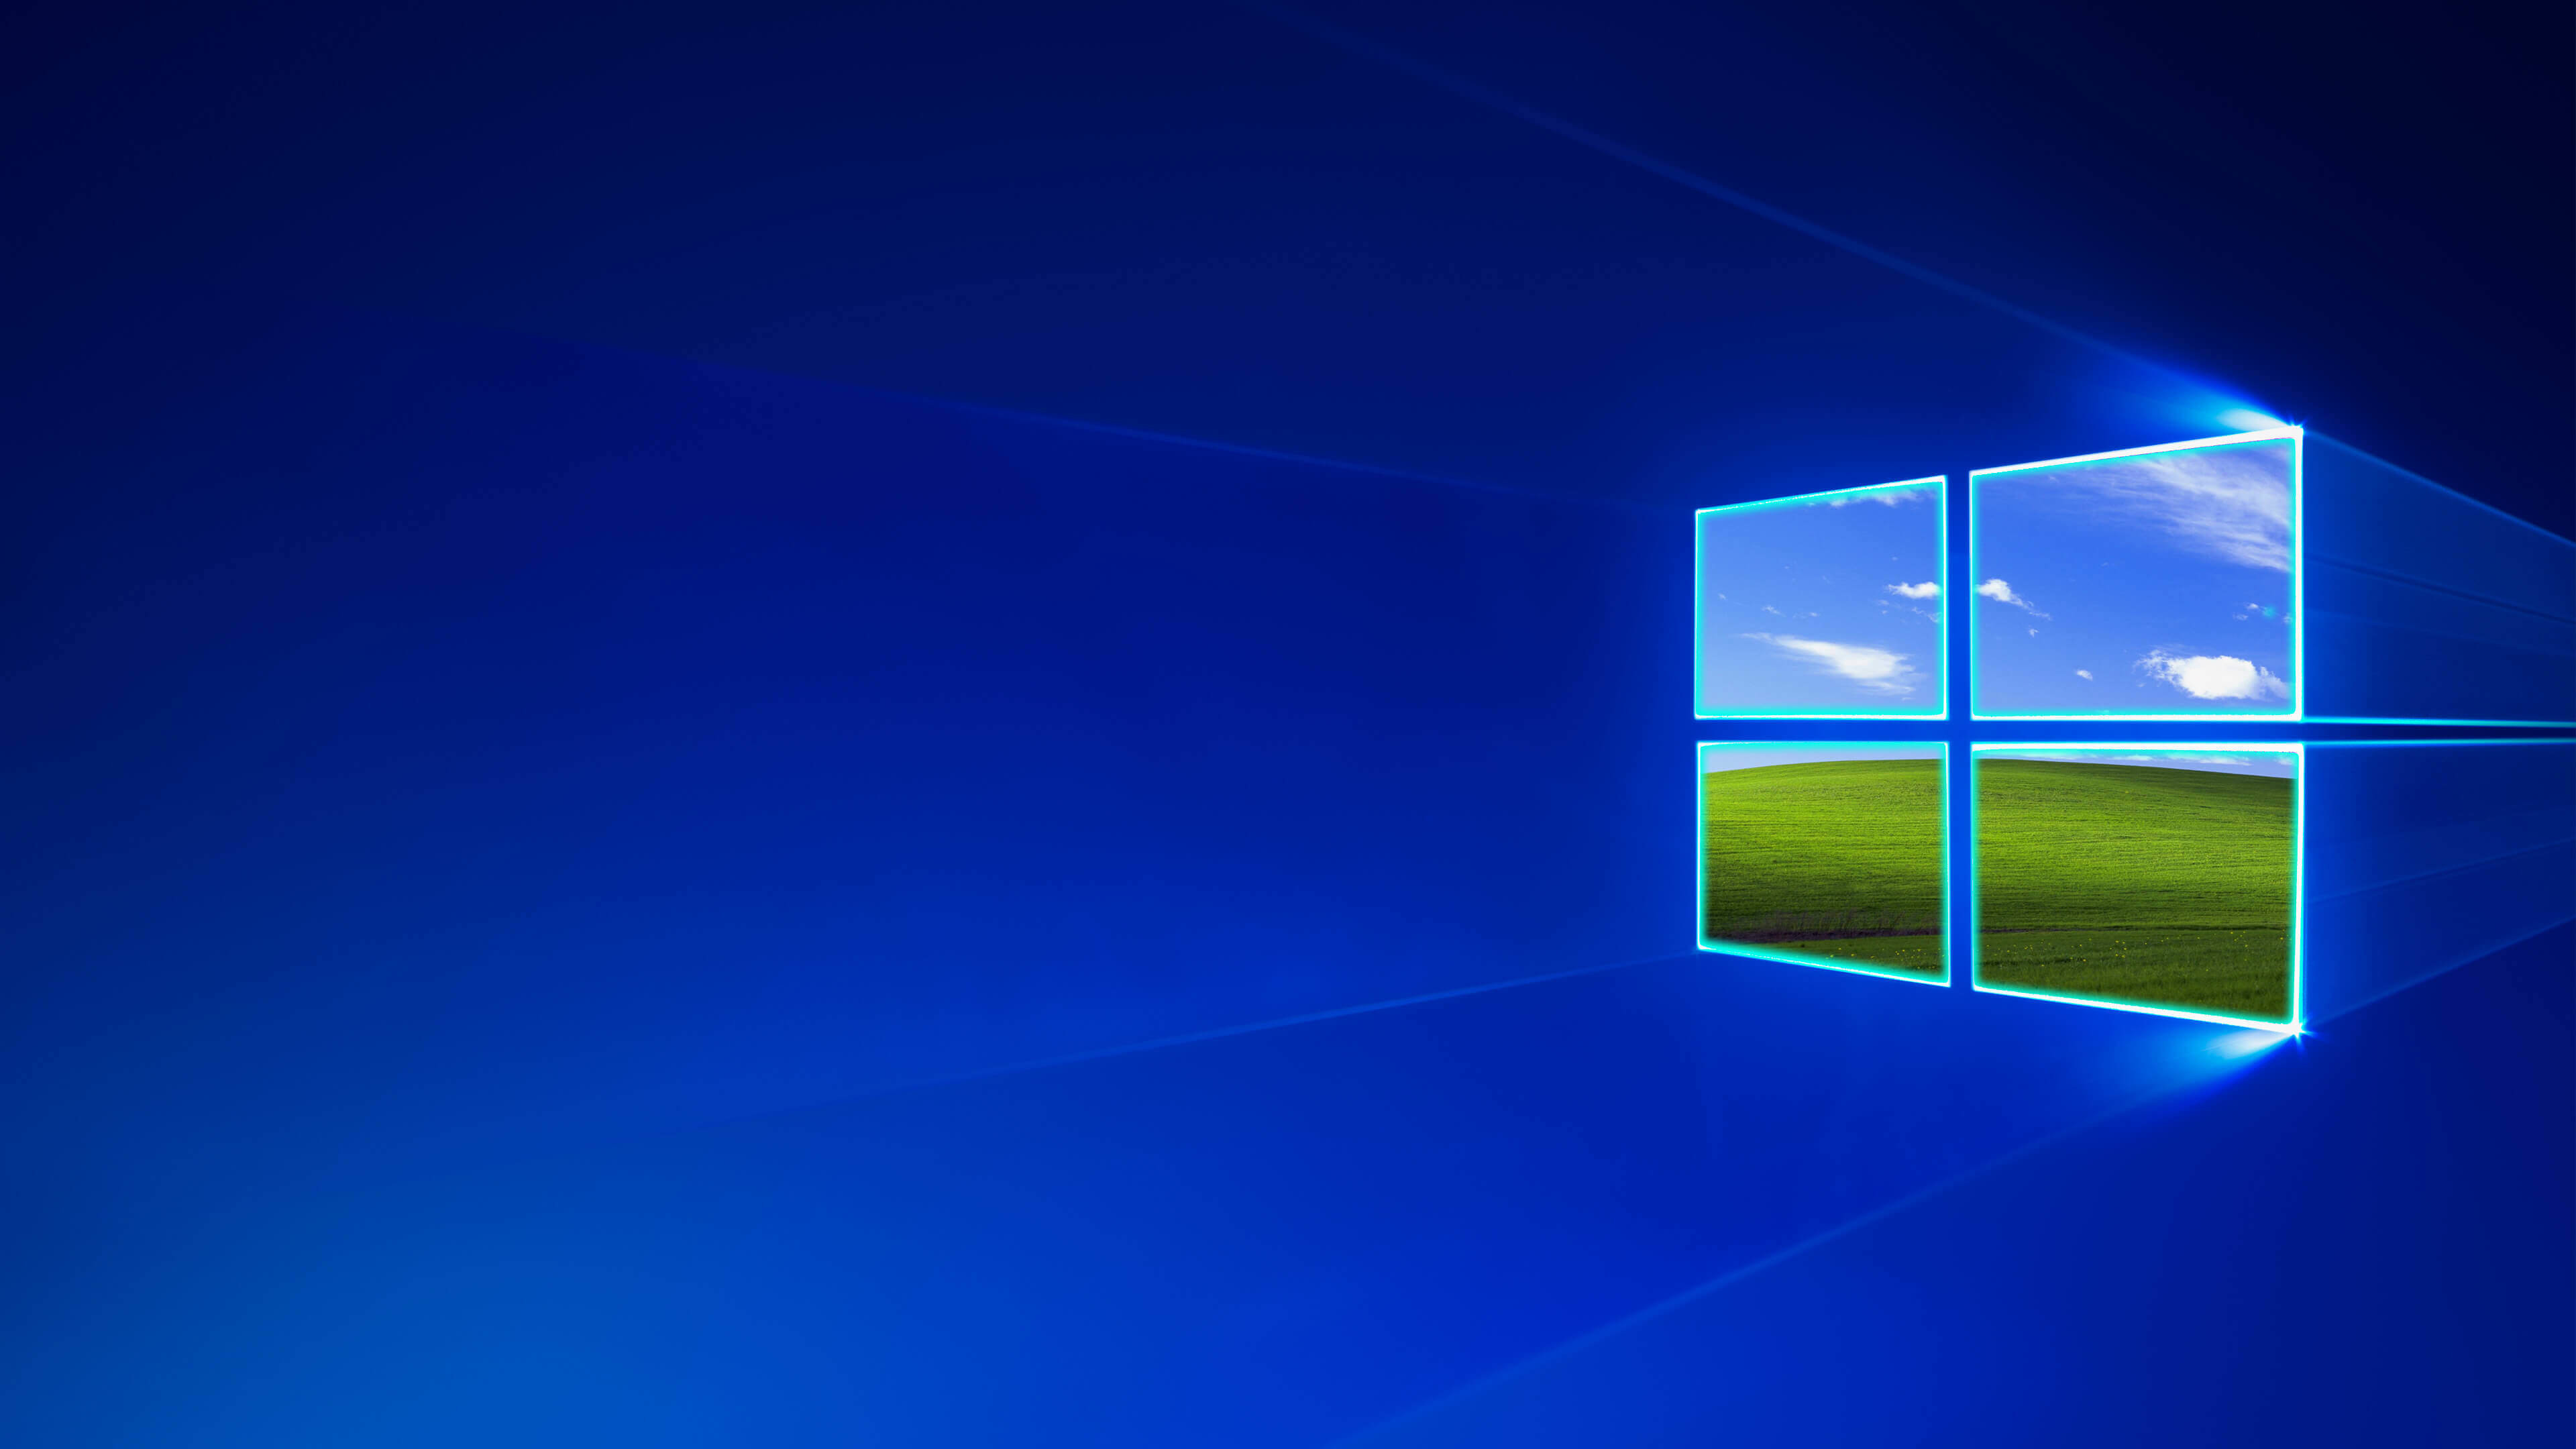 Windows 10 Pro Wallpaper 79 Images